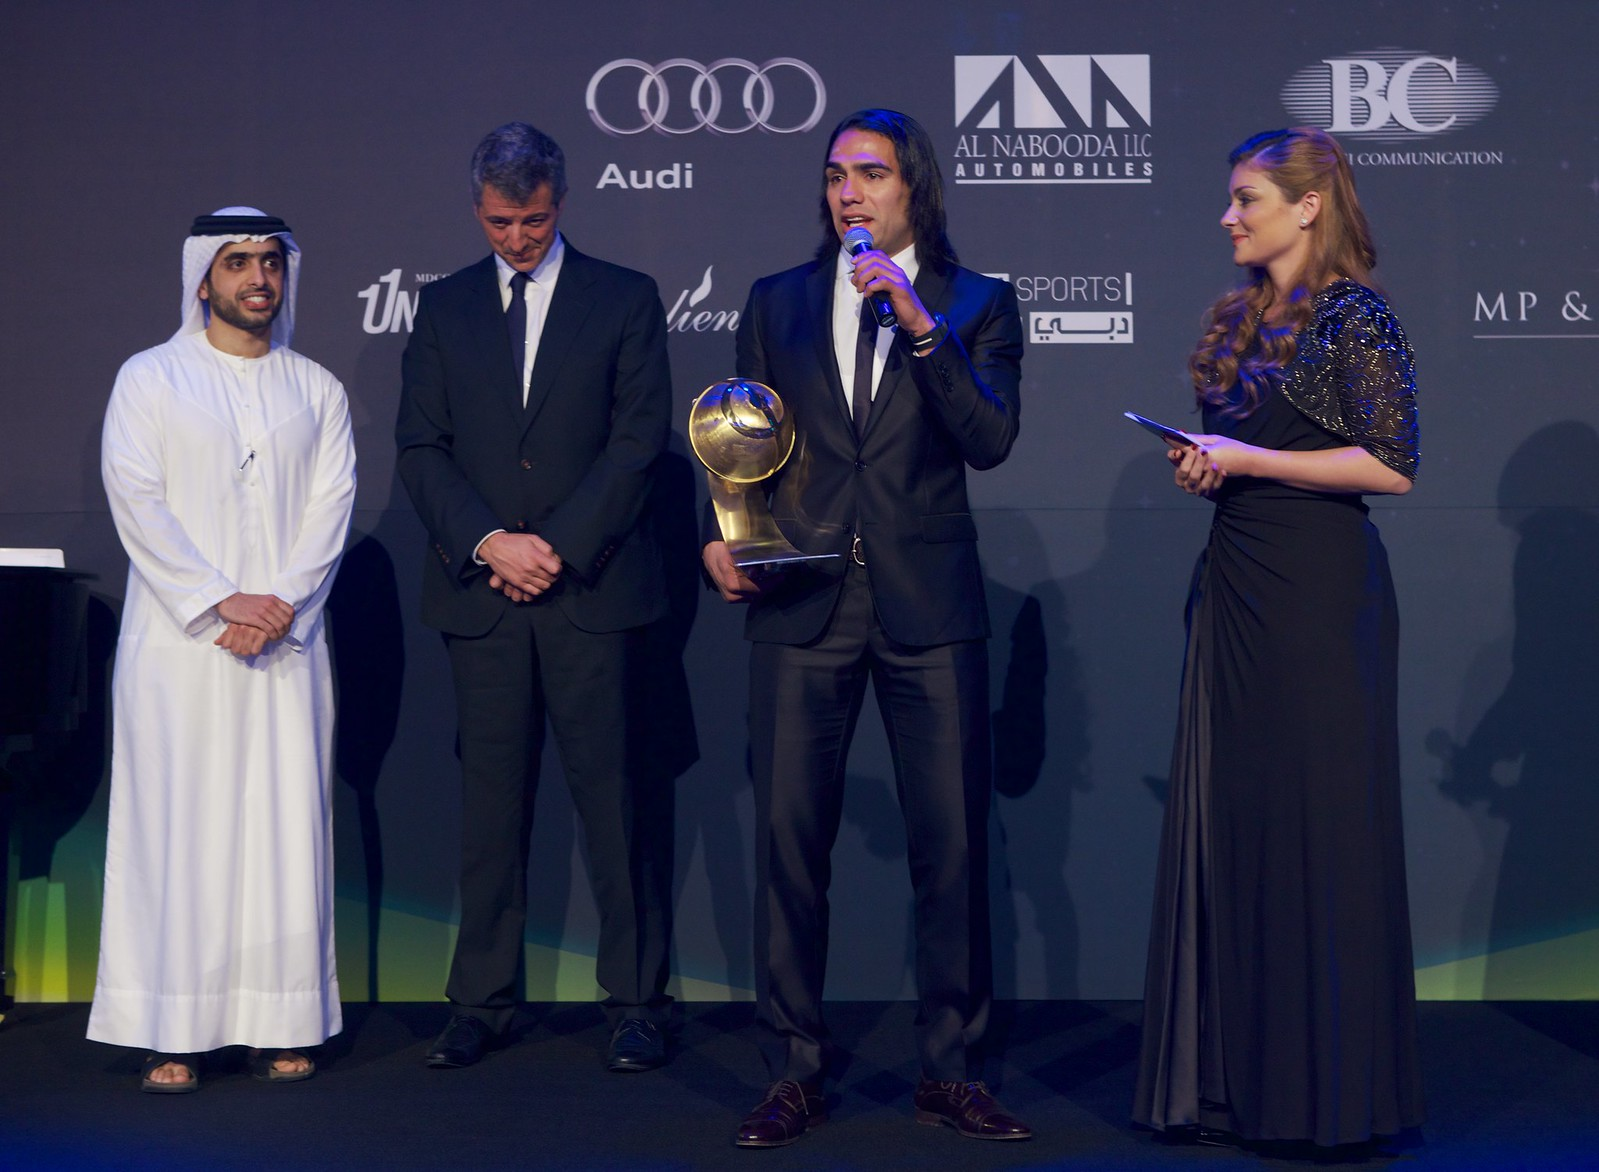 Radamel Falcao - Best Player of the year Award